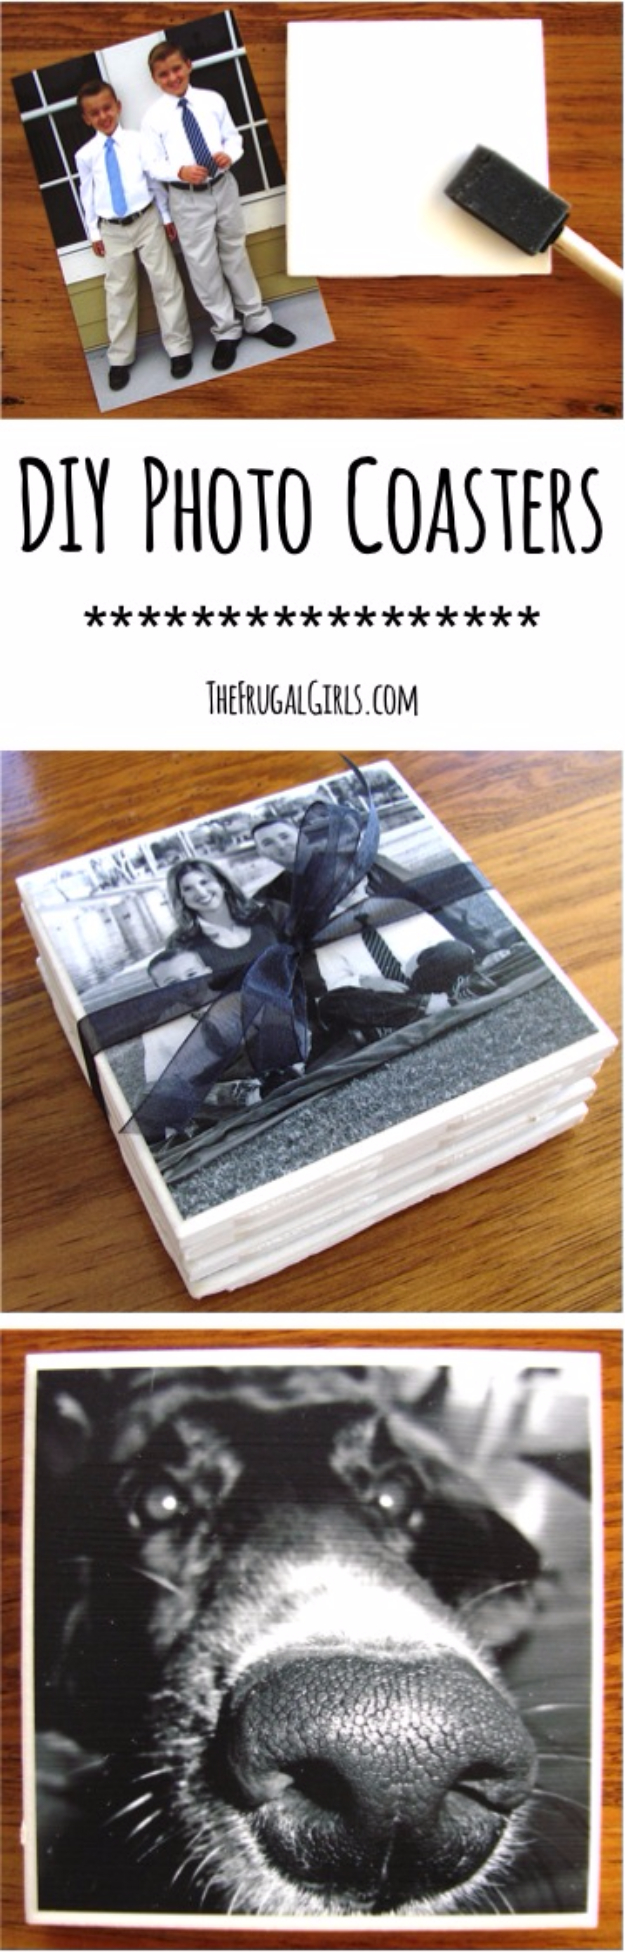 projects design unique coasters. DIY Coasters  Photo Best Quick Gifts and Home Decor Easy 33 Awesome Ideas for